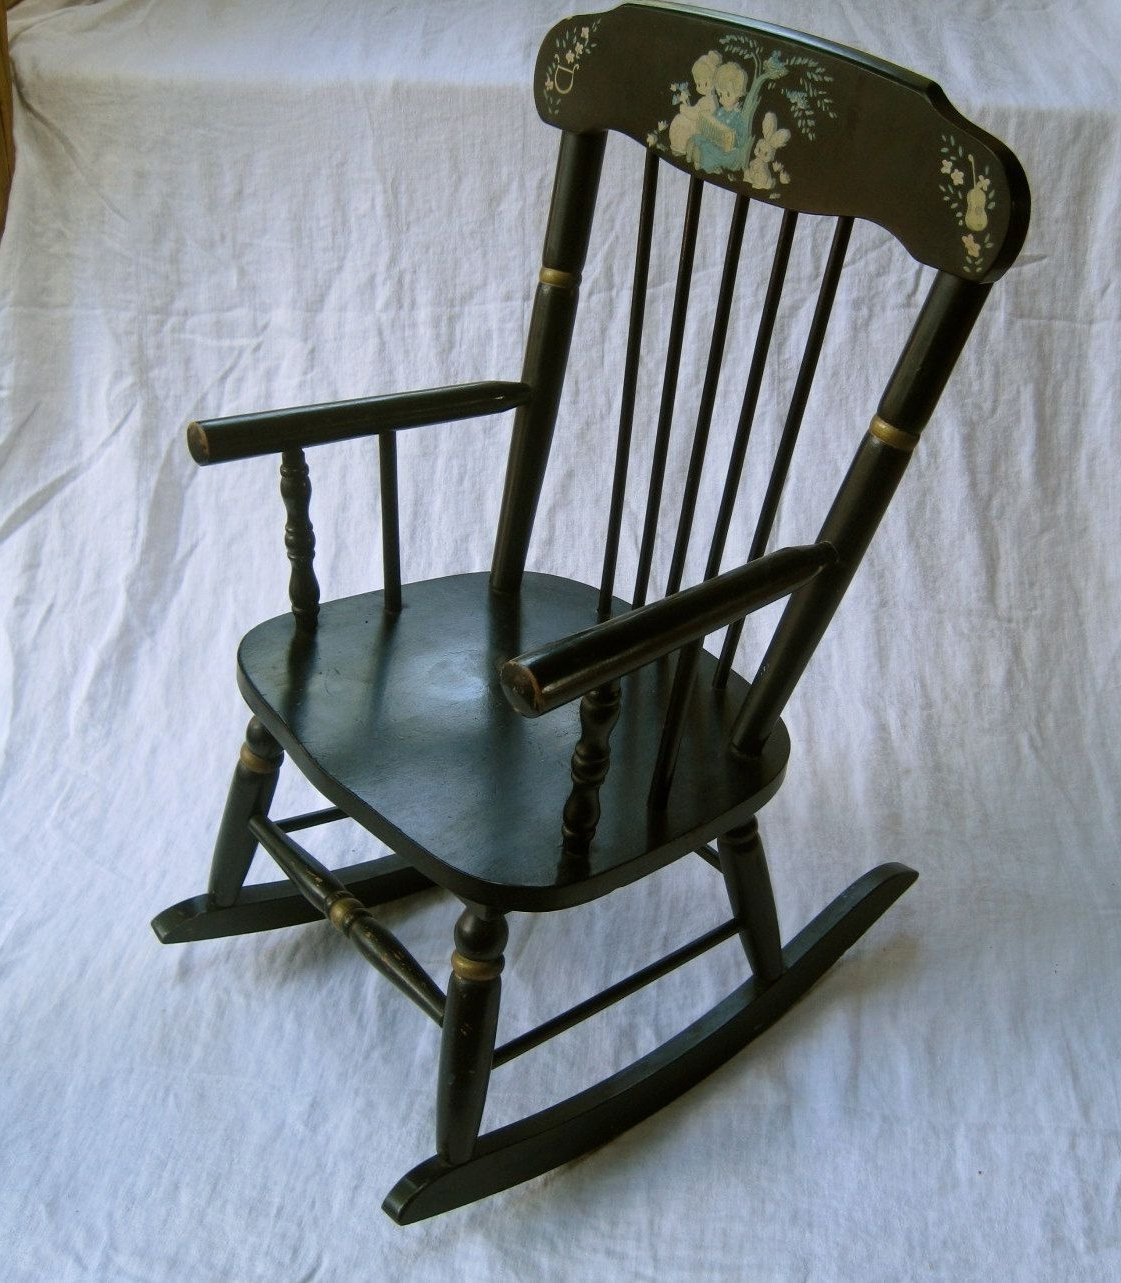 15 Best Collection of Old Fashioned Rocking Chairs